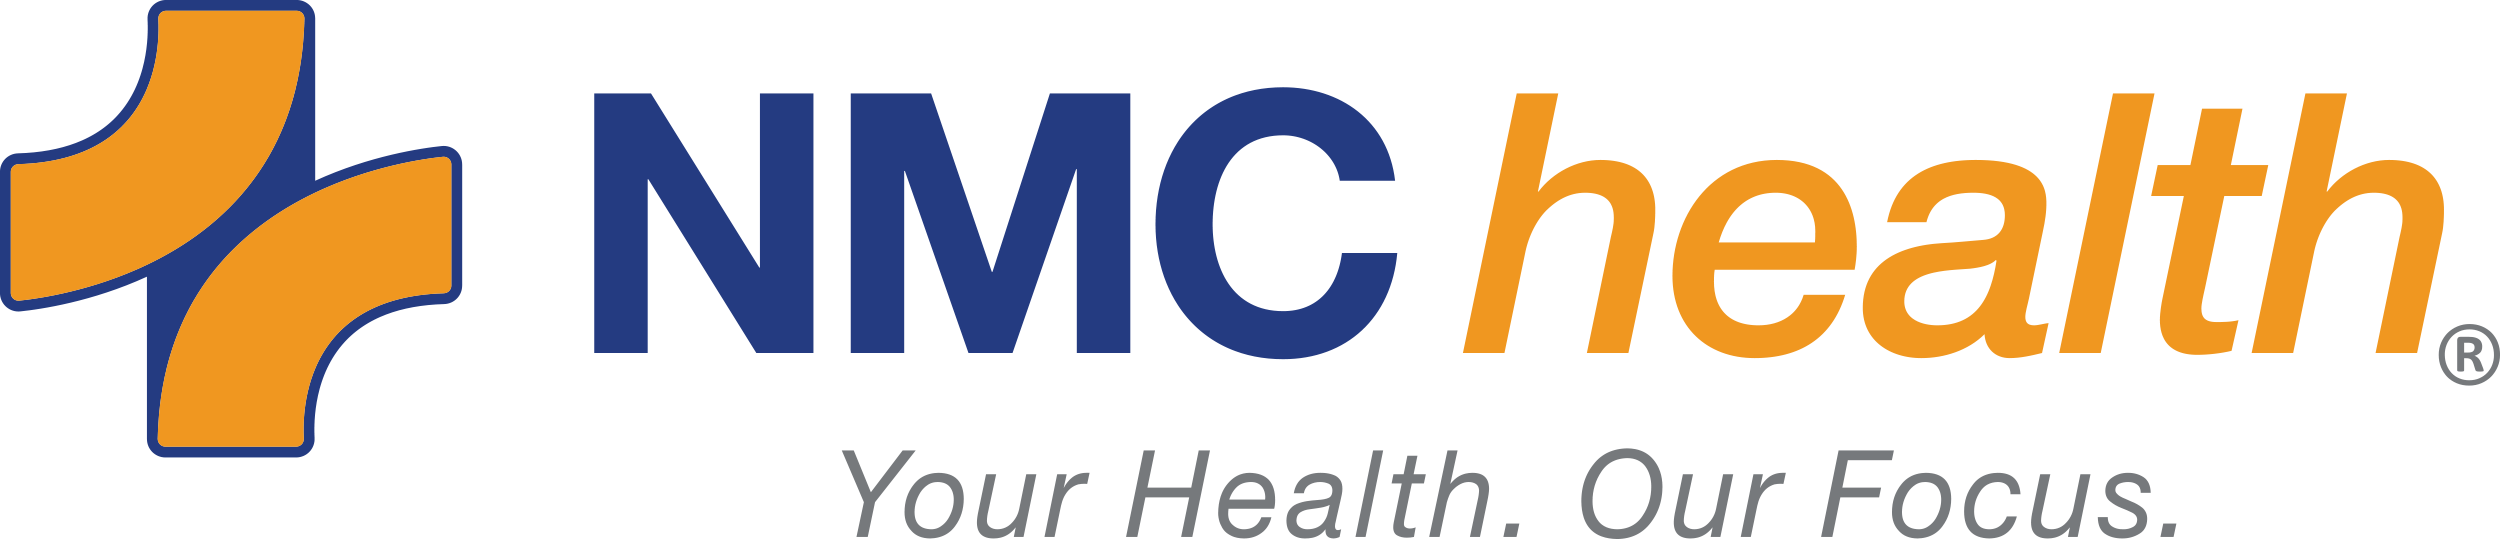 NMC Health logo newton ks blue and gold color logo with register mark and tagline